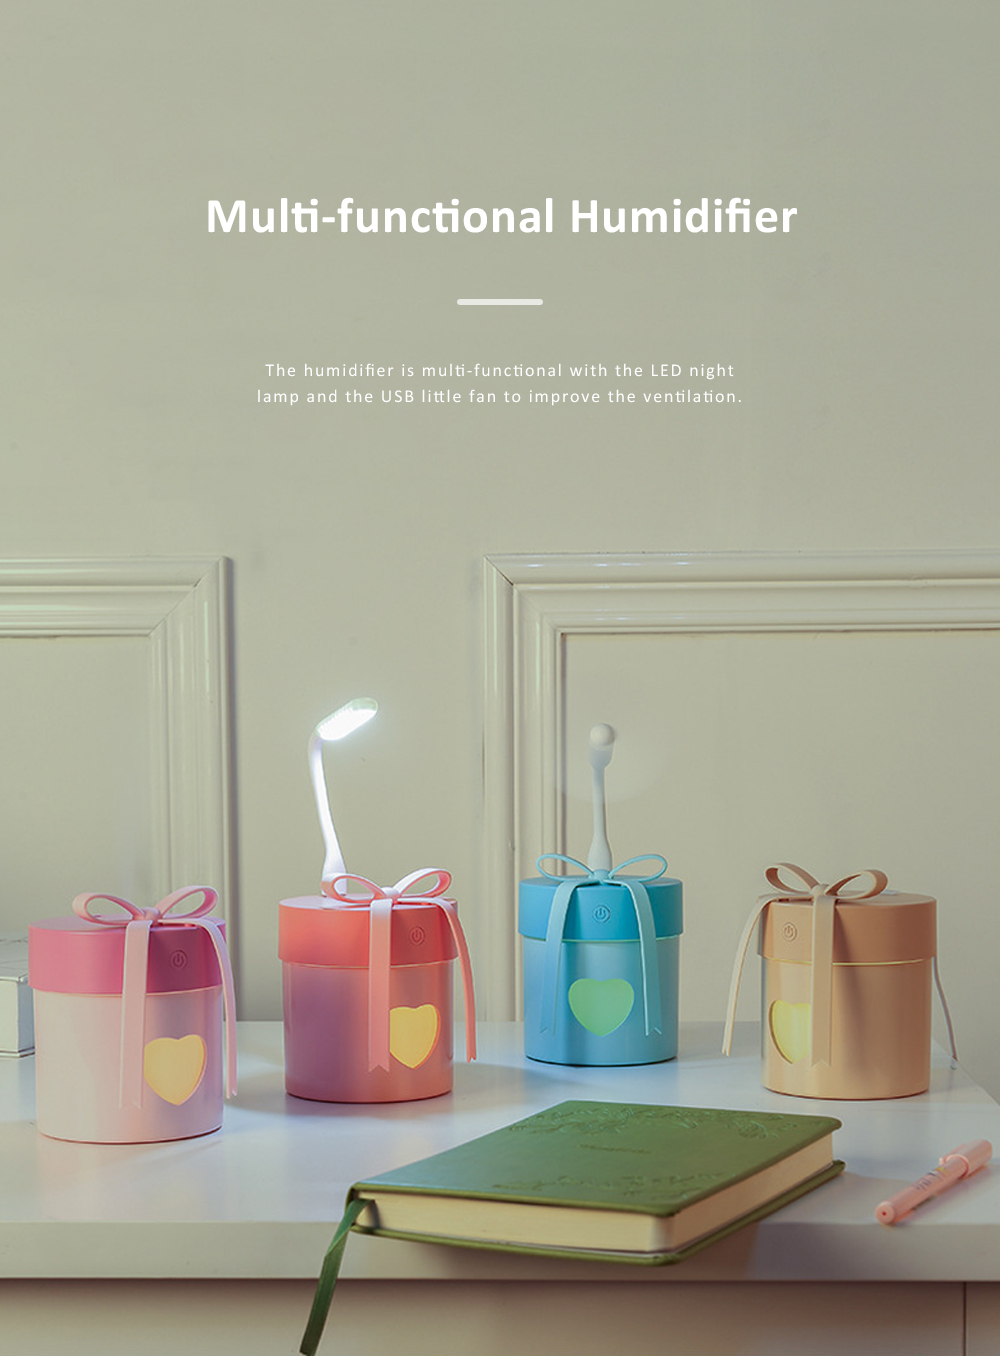 Multi-functional Portable Mini Air Humidifier Domestic Desk Moisturizer with Fan LED Night Lamp 2